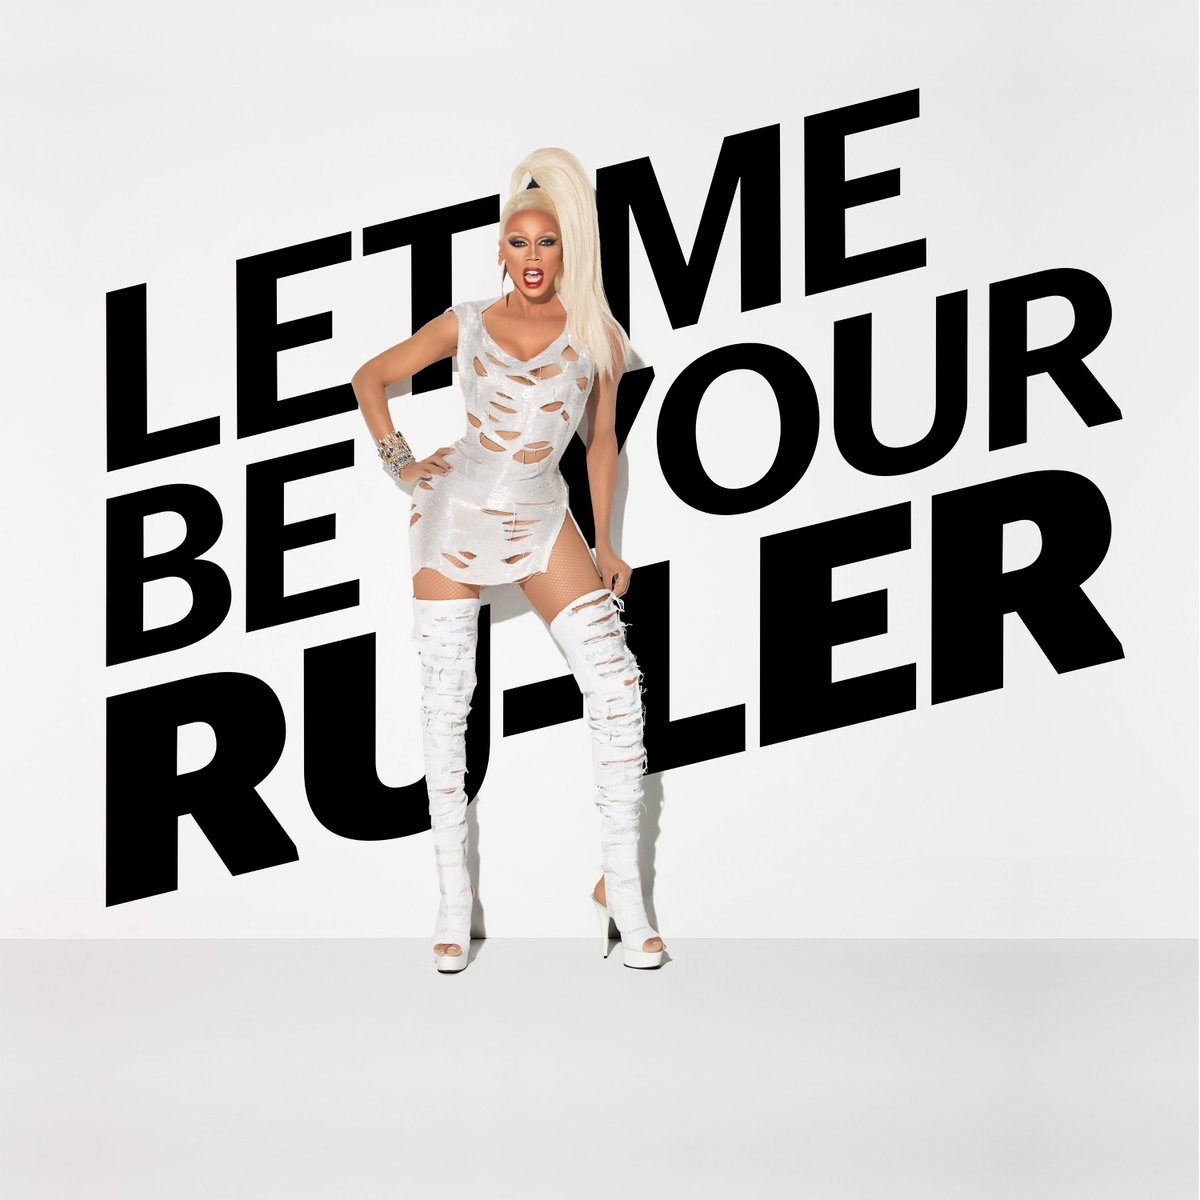 Welcome to New Zealand @RuPaul !! #TV2RuPaulsDragRace starts 2nd Oct TV2 #letmebeyourruler http://t.co/piJ6GcpzTa